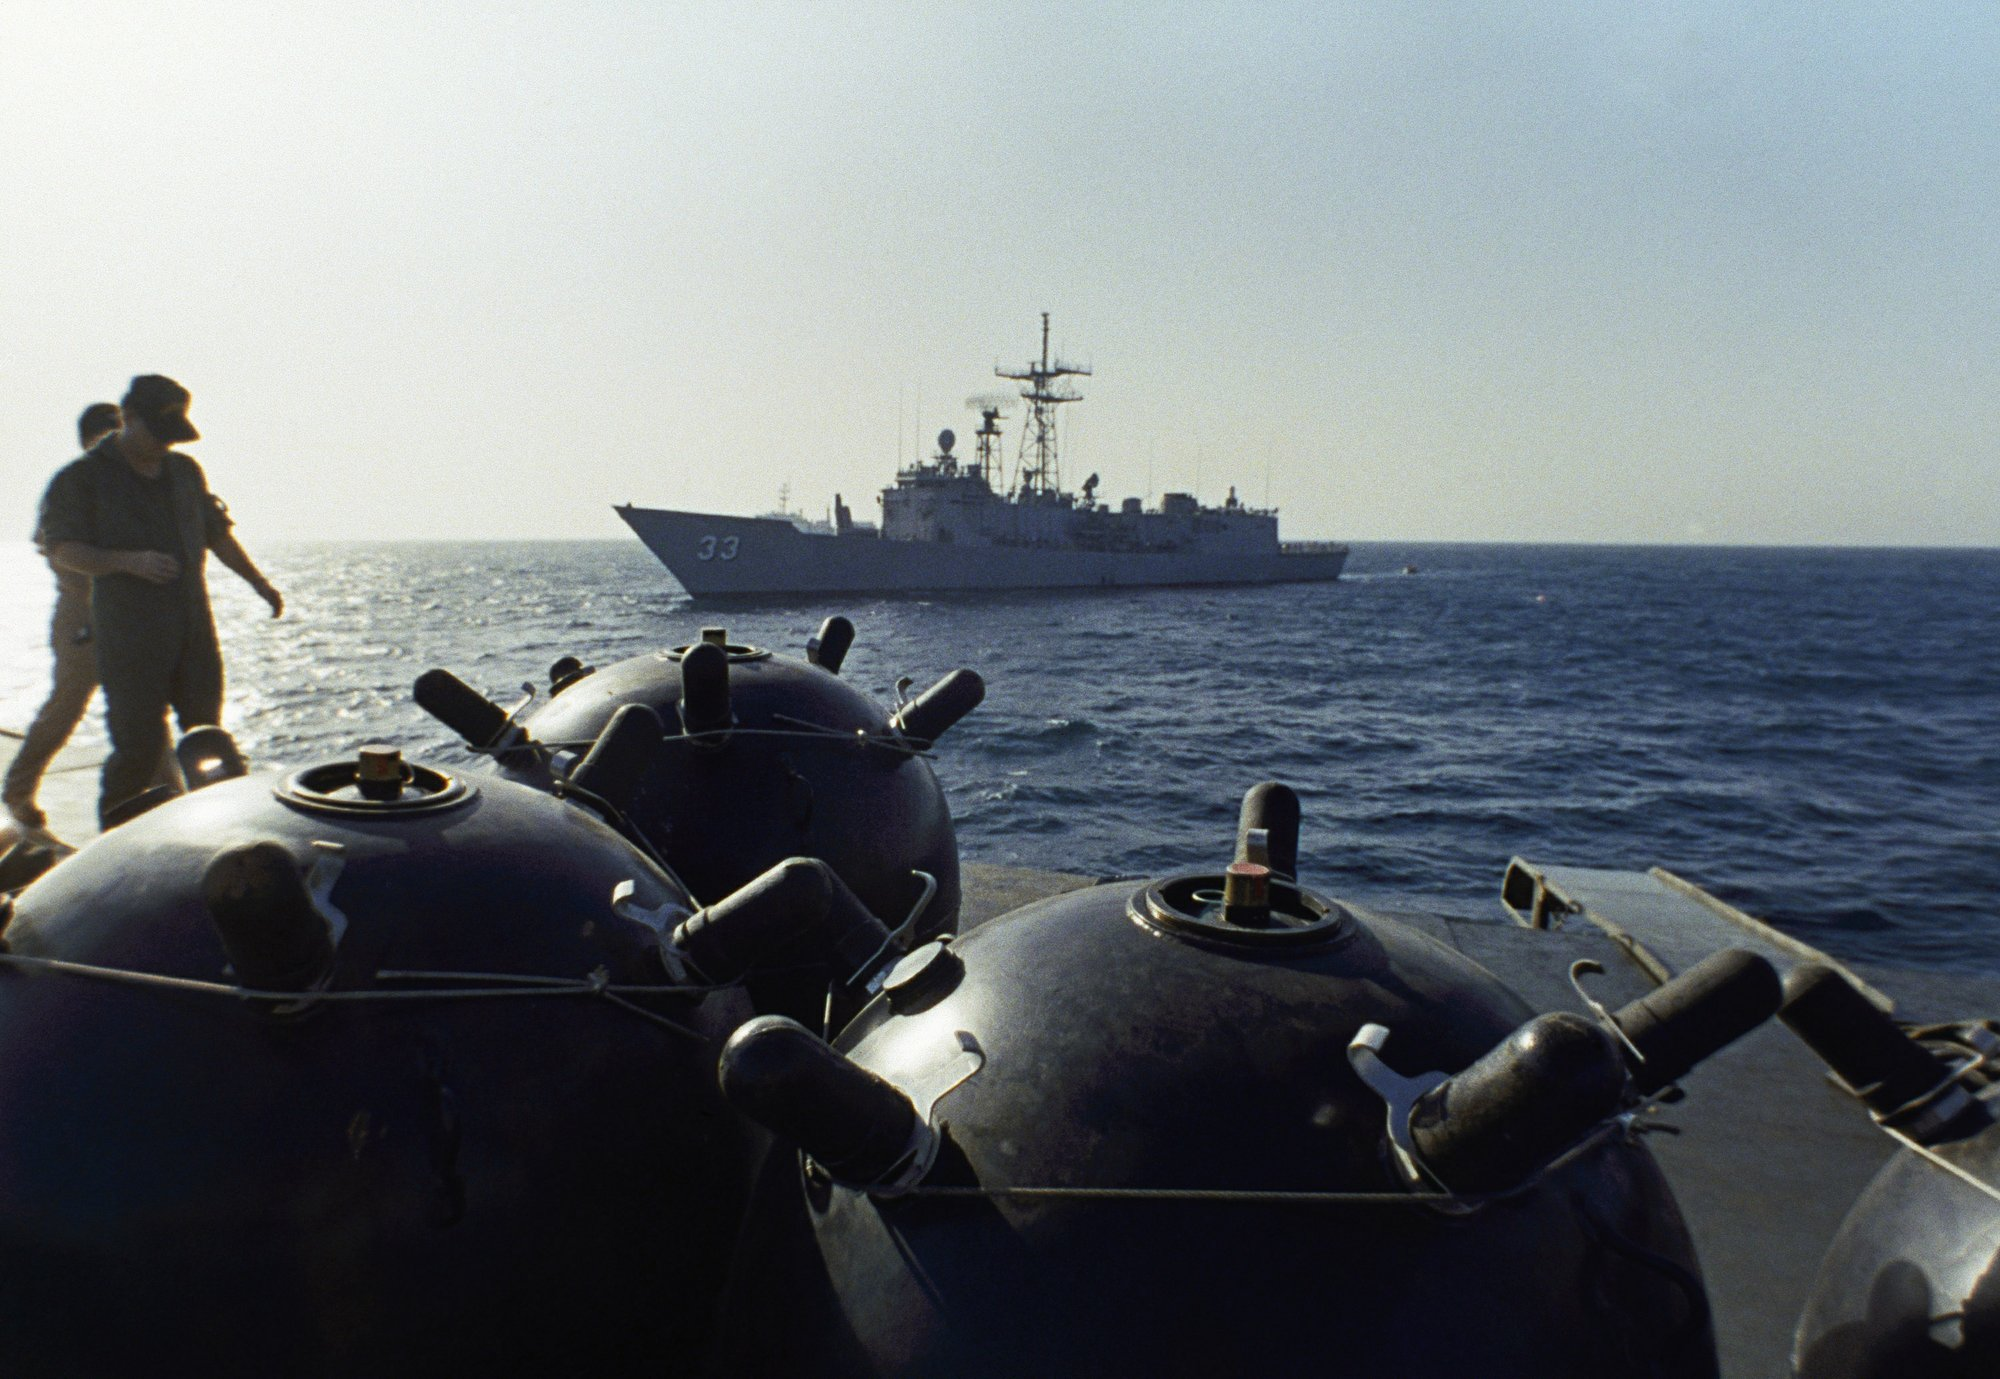 A look at foreign military bases across the Persian Gulf